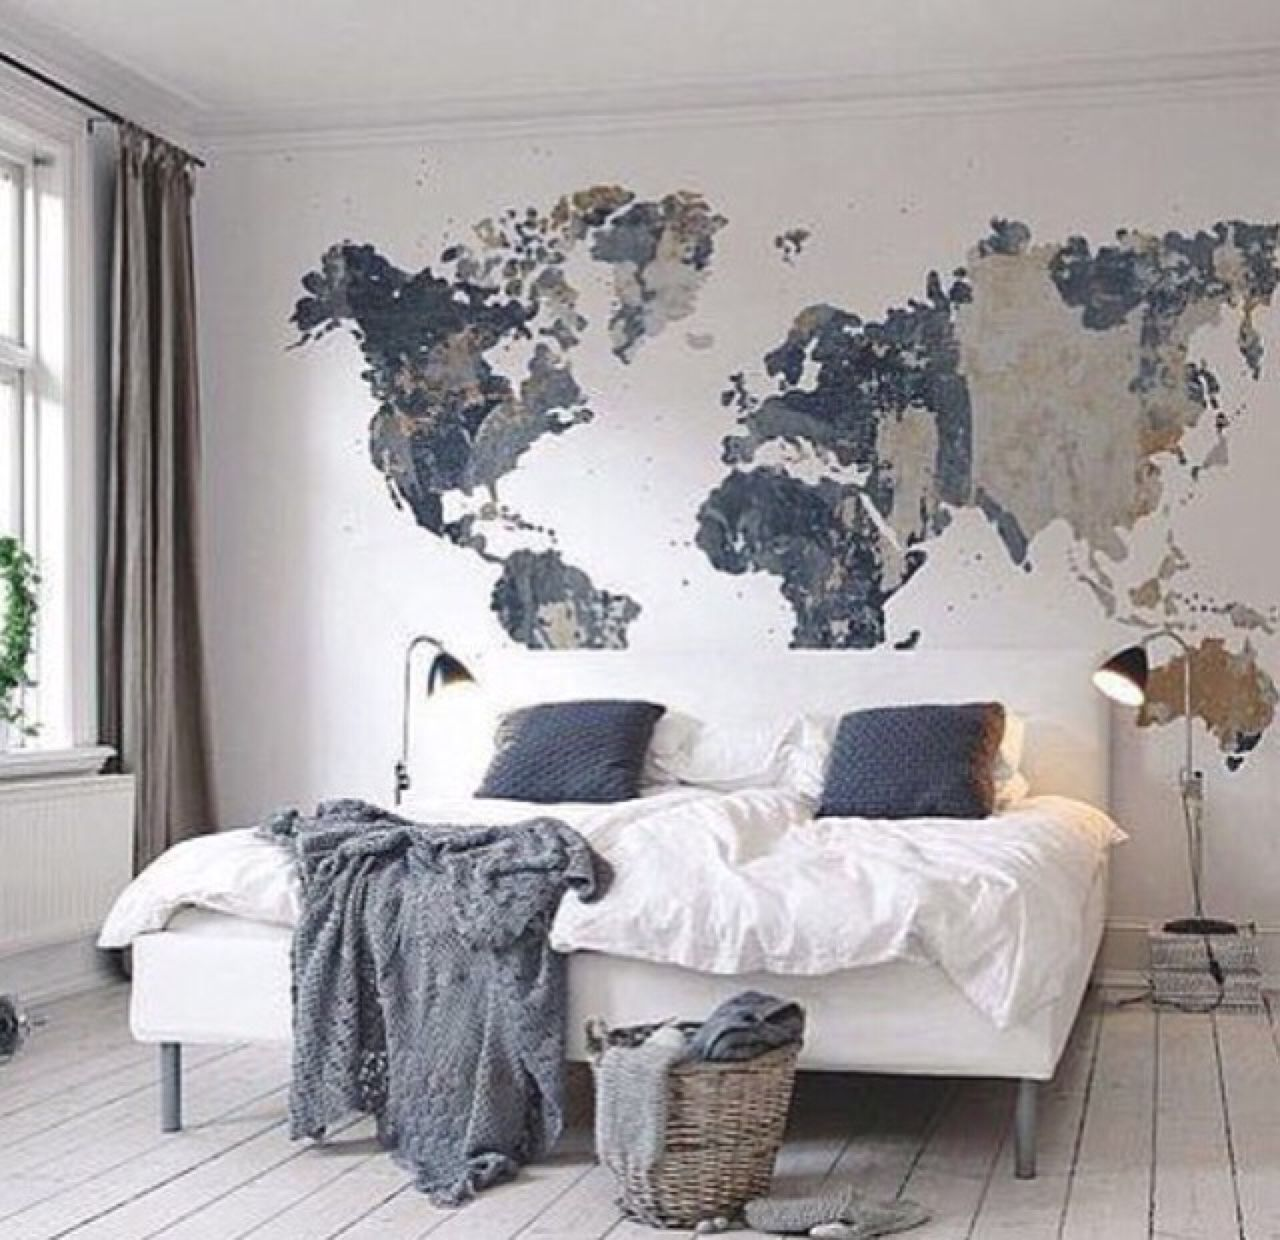 Cool map mural see various wall mural designs at http for Mural designs